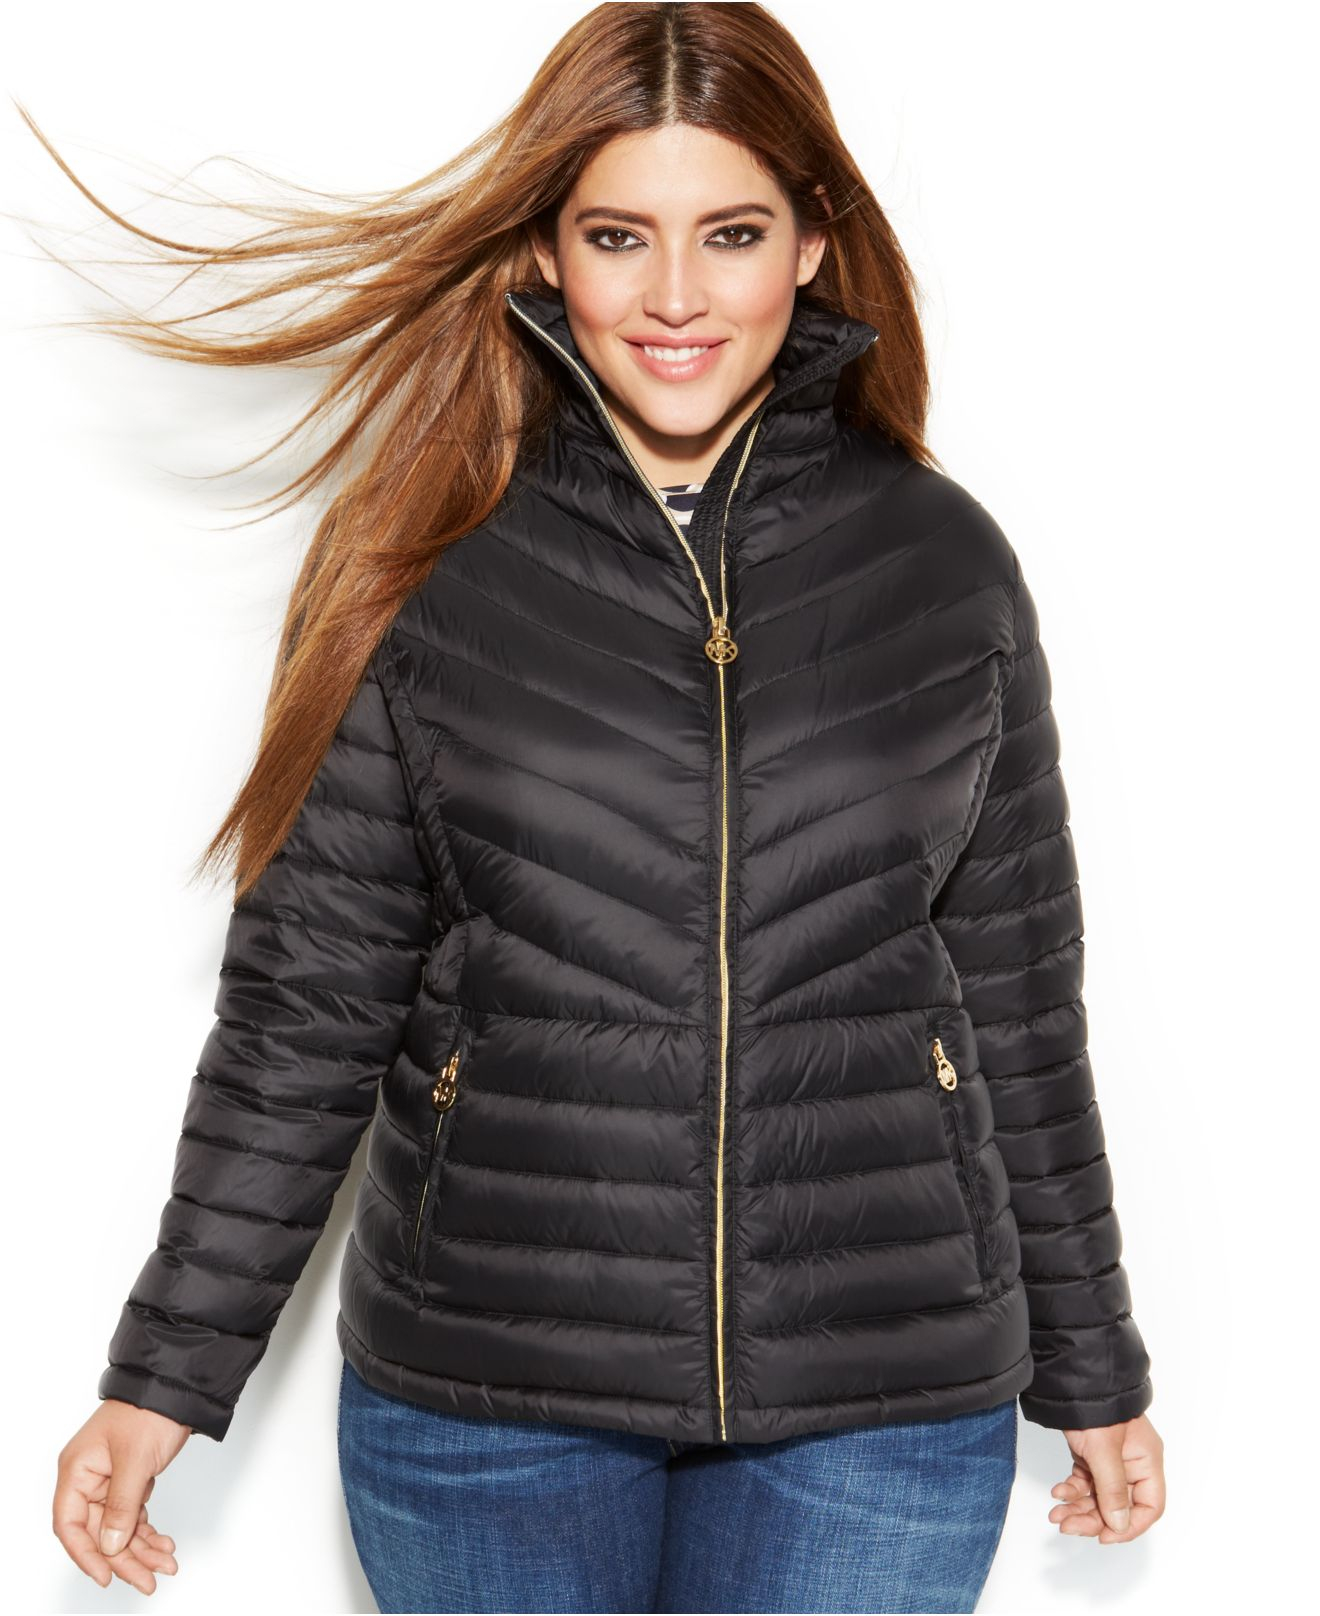 a99660afe0a77 Lyst - Michael Kors Michael Plus Size Packable Quilted Down Puffer ...